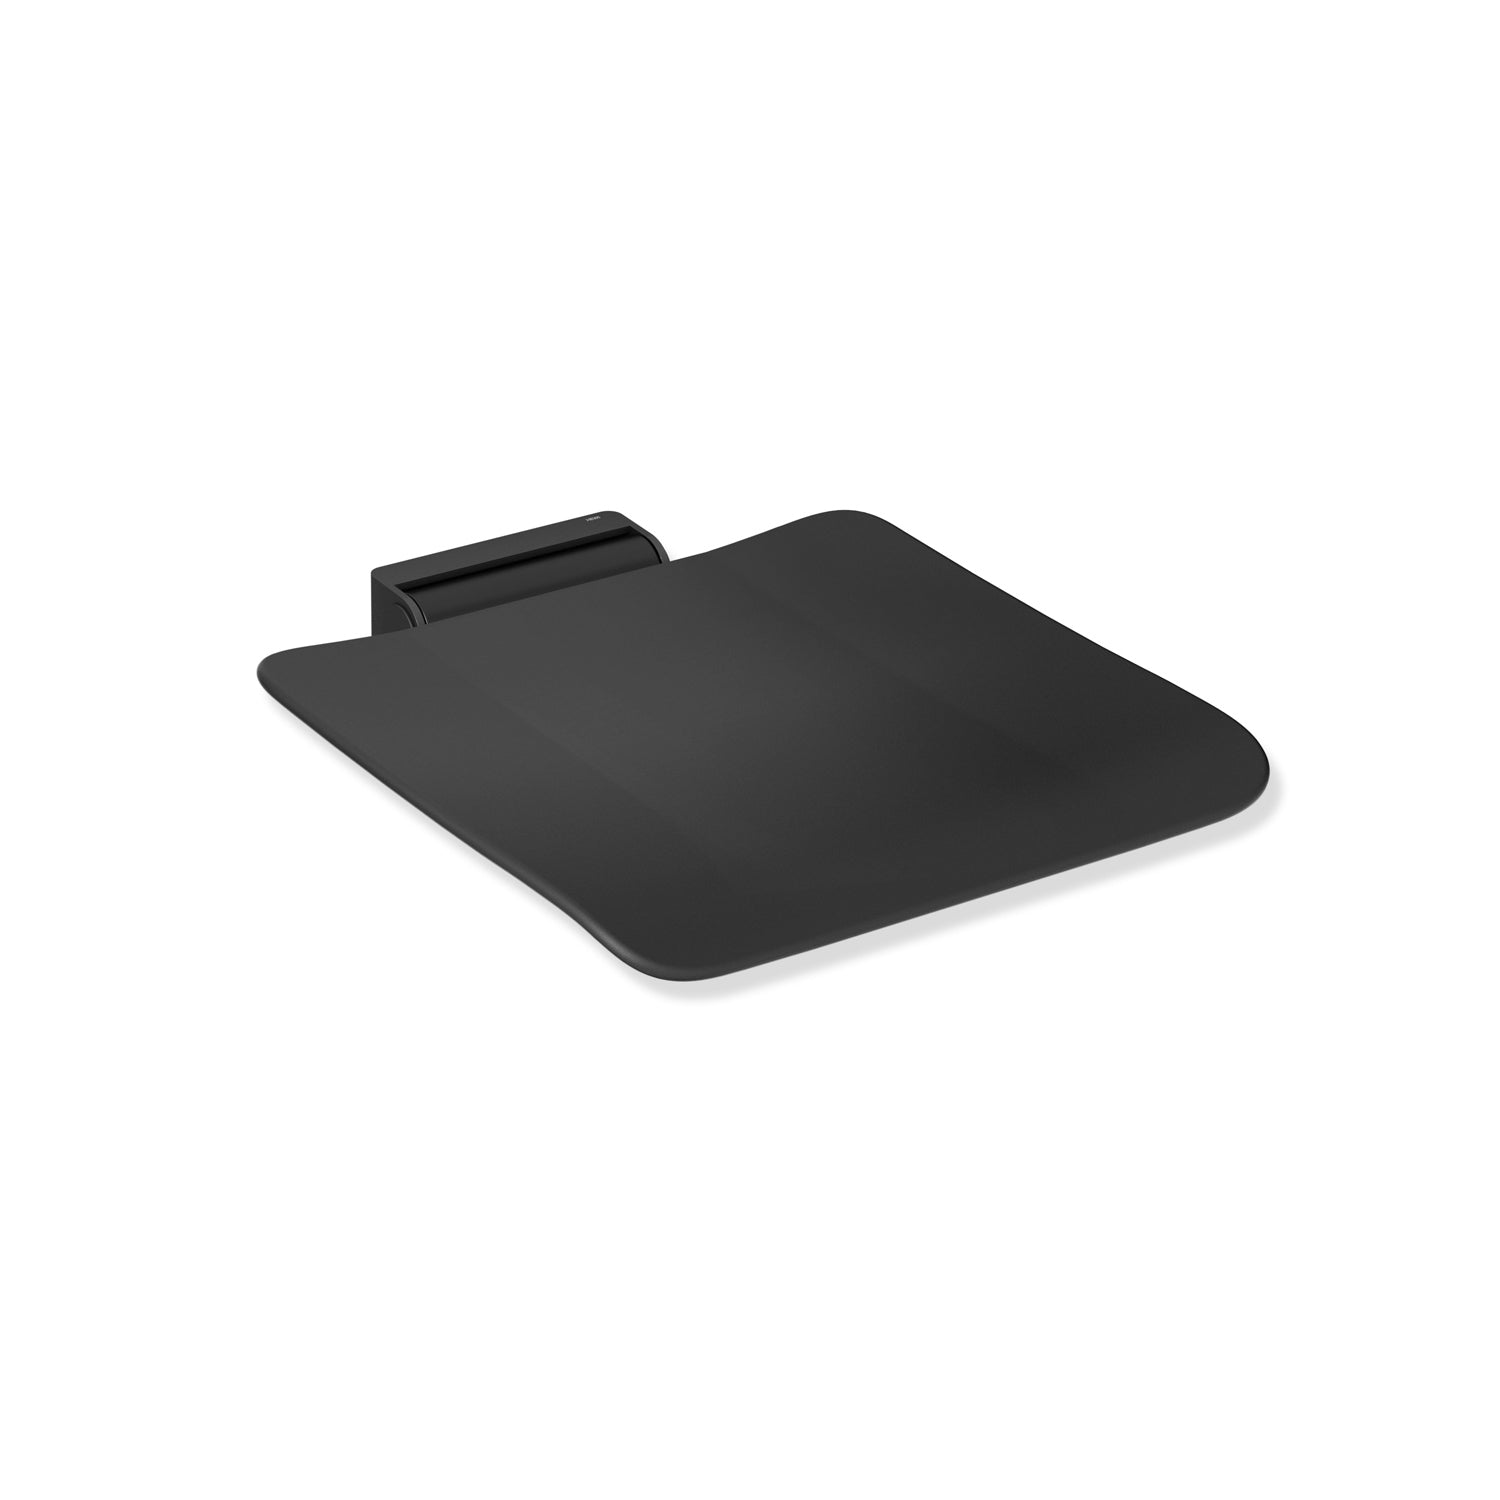 Freestyle Removable Shower Seat with a matt black seat and matt black bracket on a white background